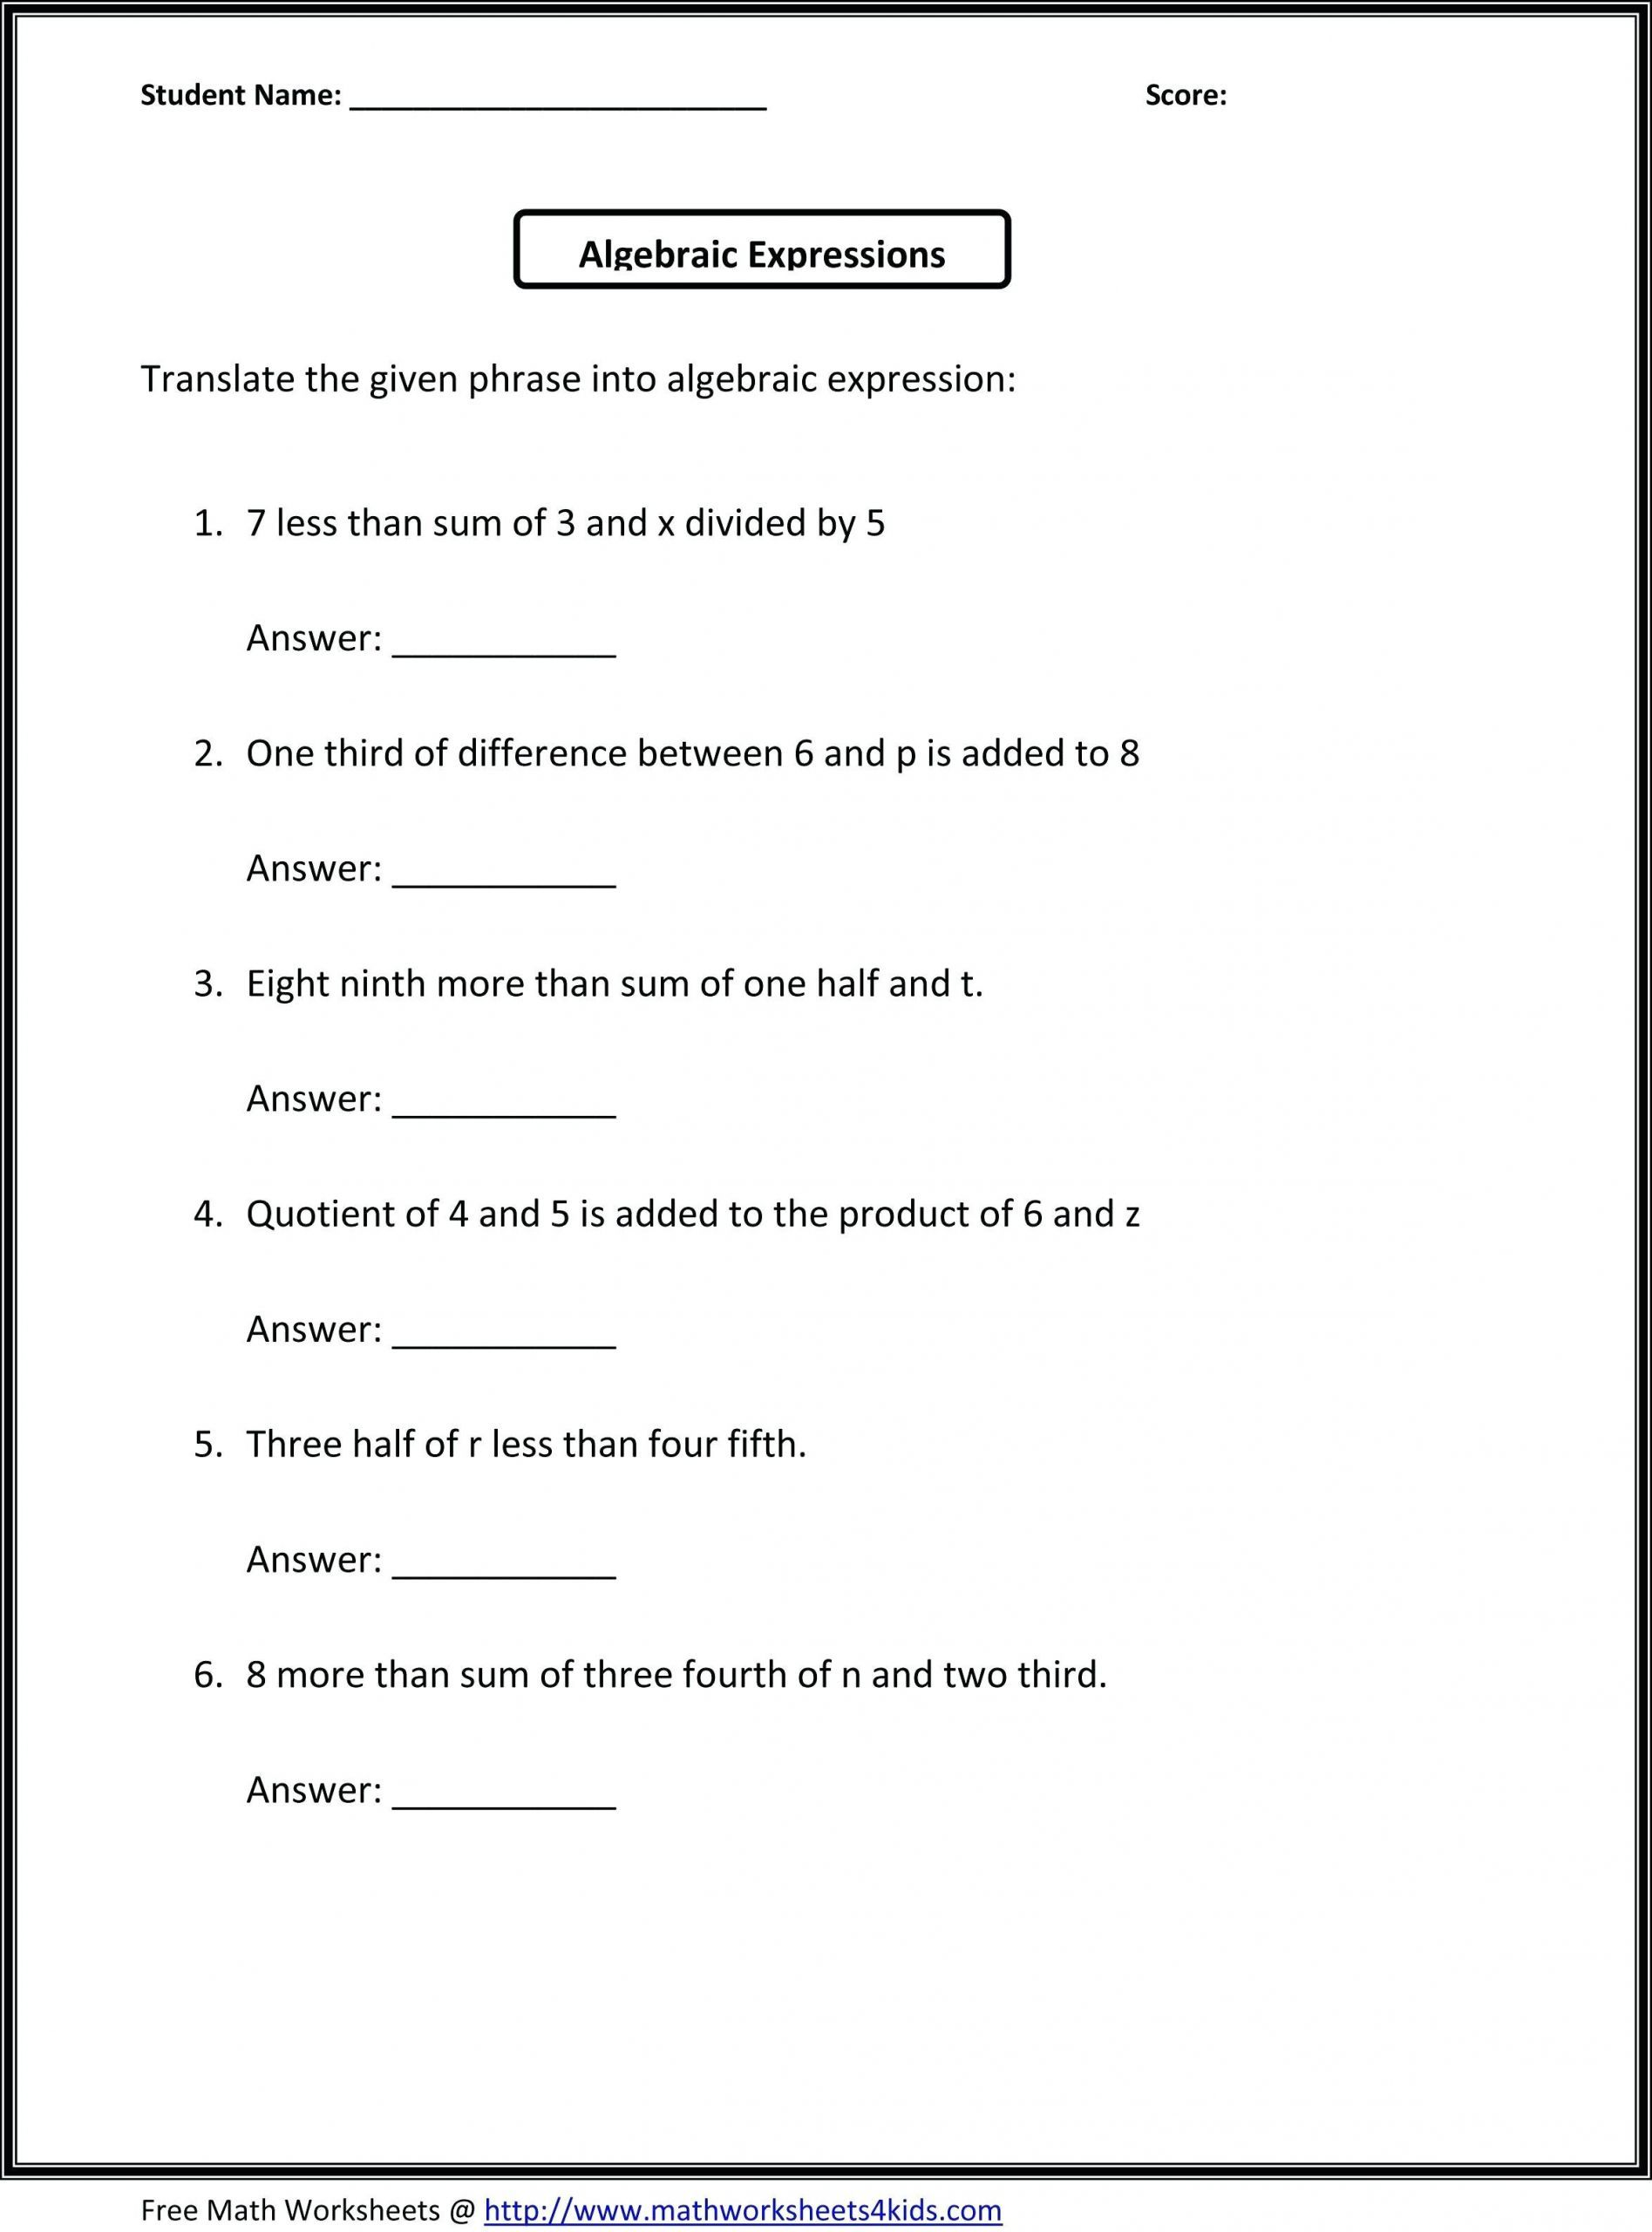 3 Free Math Worksheets Third Grade 3 Counting Money